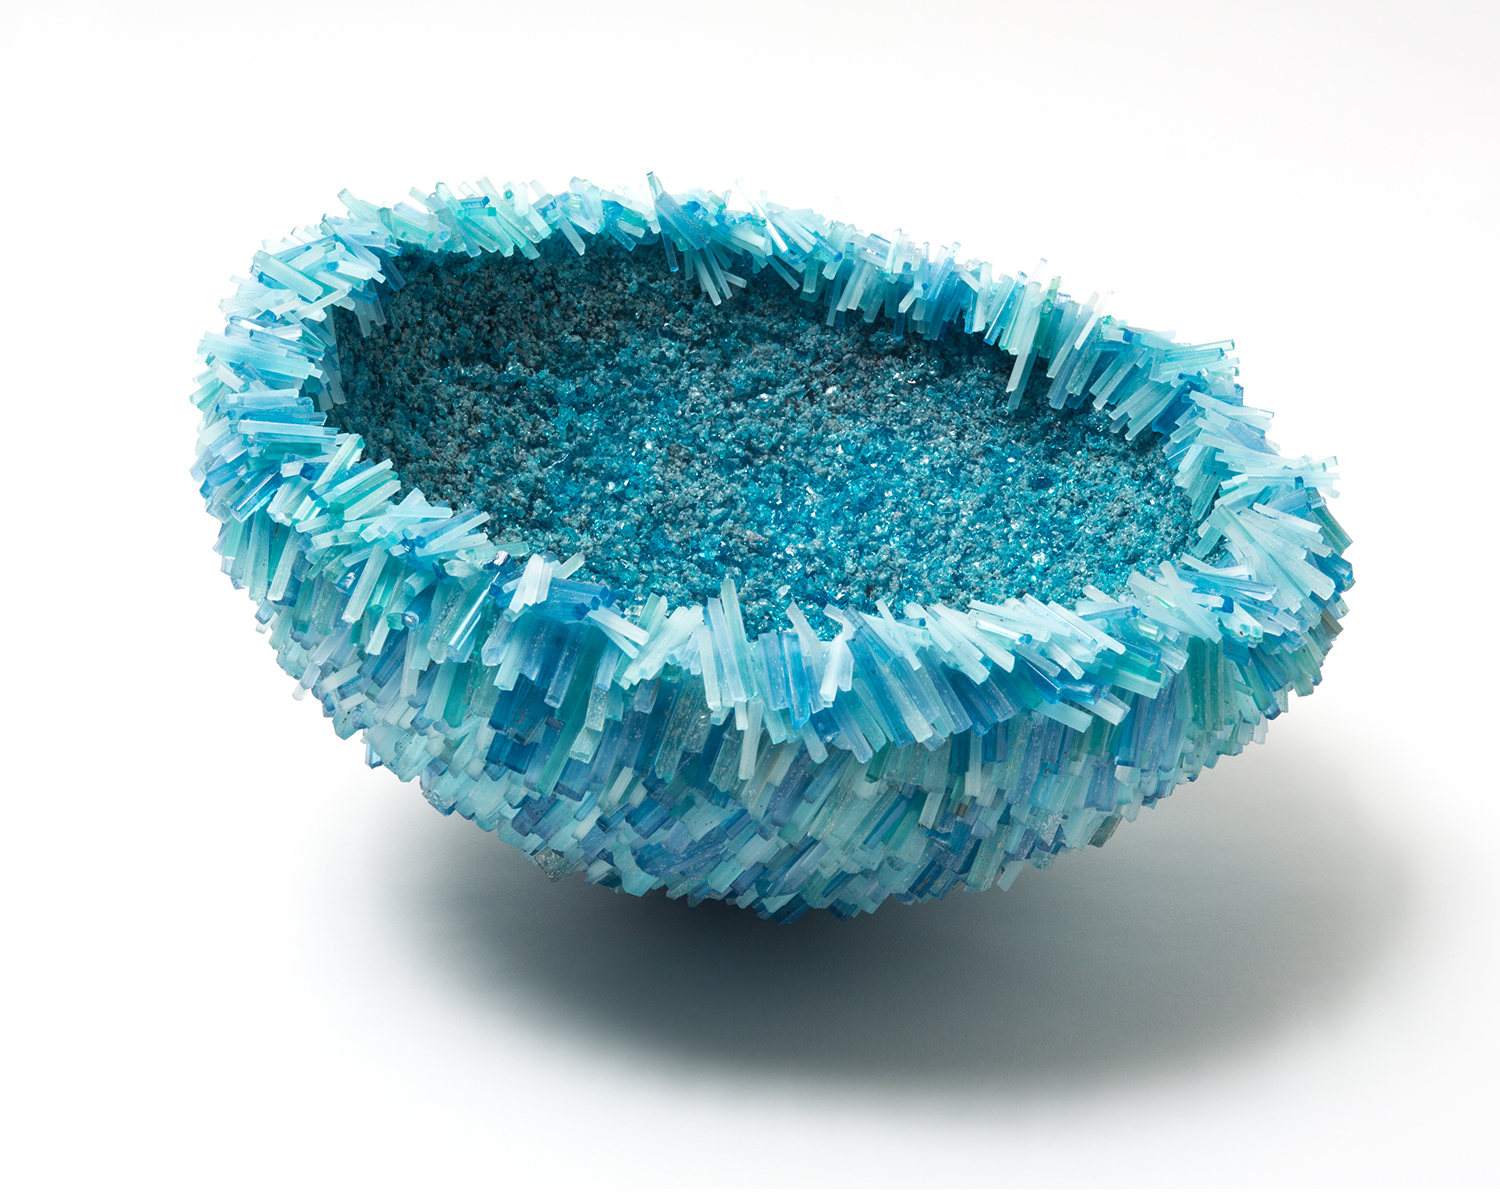 Laura Kramer Copper Blue Sea Urchin Bowl. Photo courtesy Heller Gallery